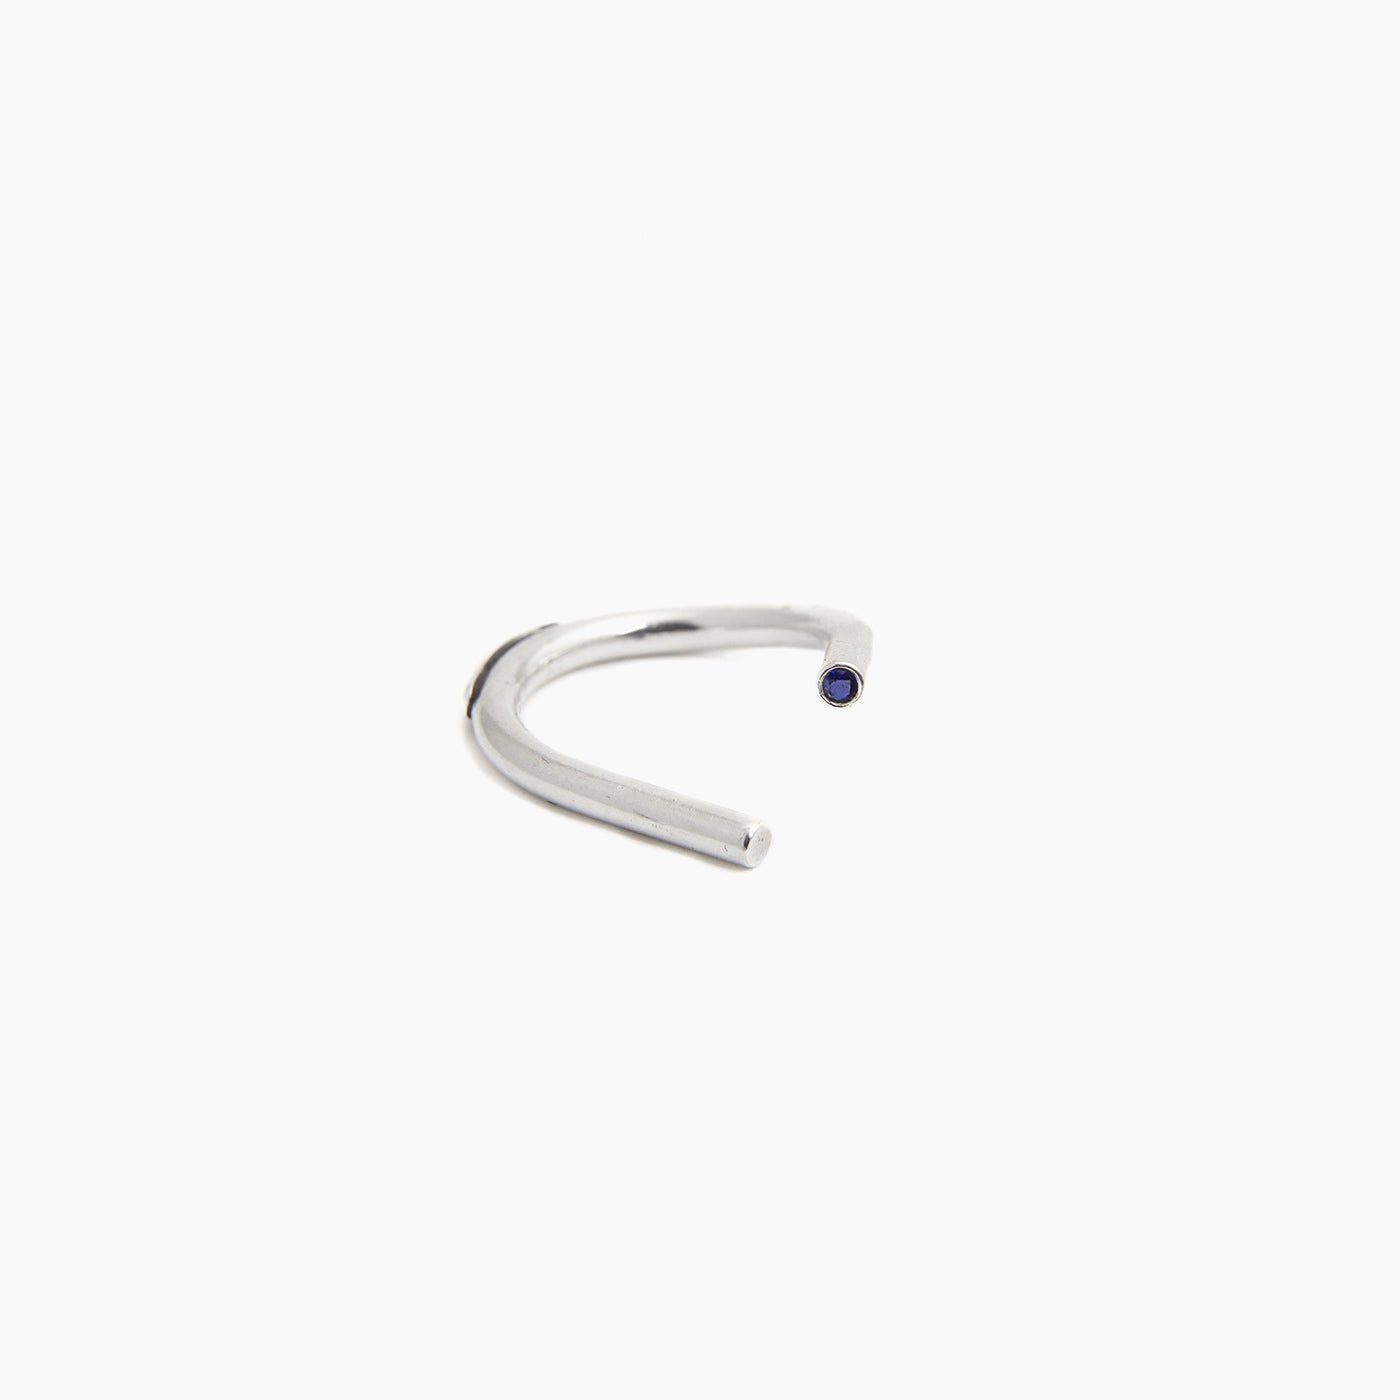 INNAN Jewellery designer Chaotic Curve Ring in sterling silver with blue sapphire handmade in Berlin